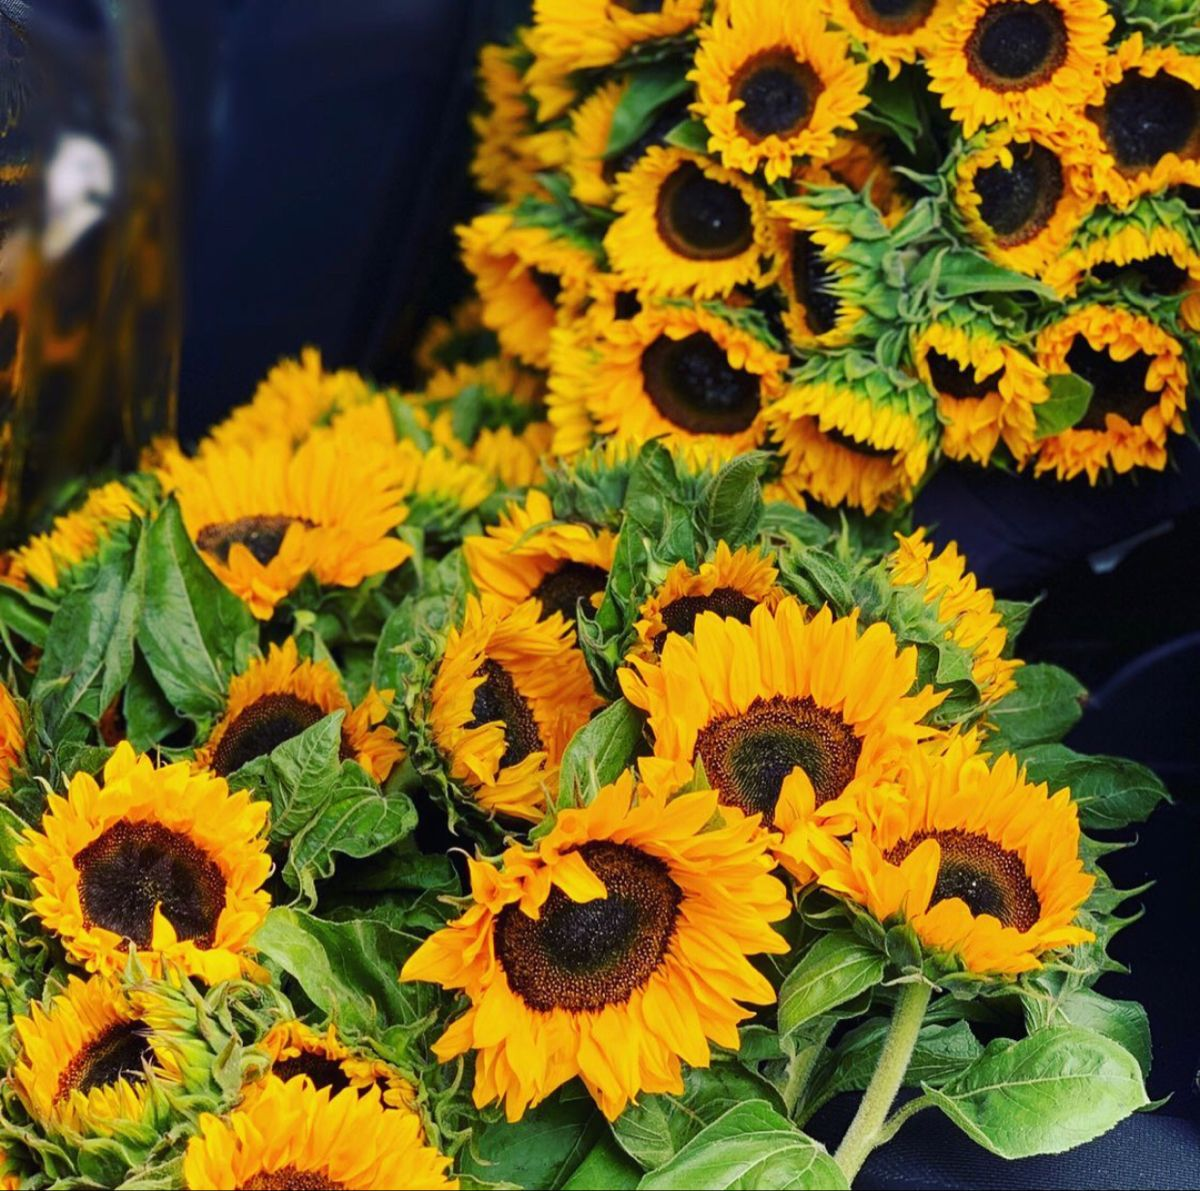 Sunflowers In 2020 Sunflower Delivery Types Of Flowers Red Sunflowers